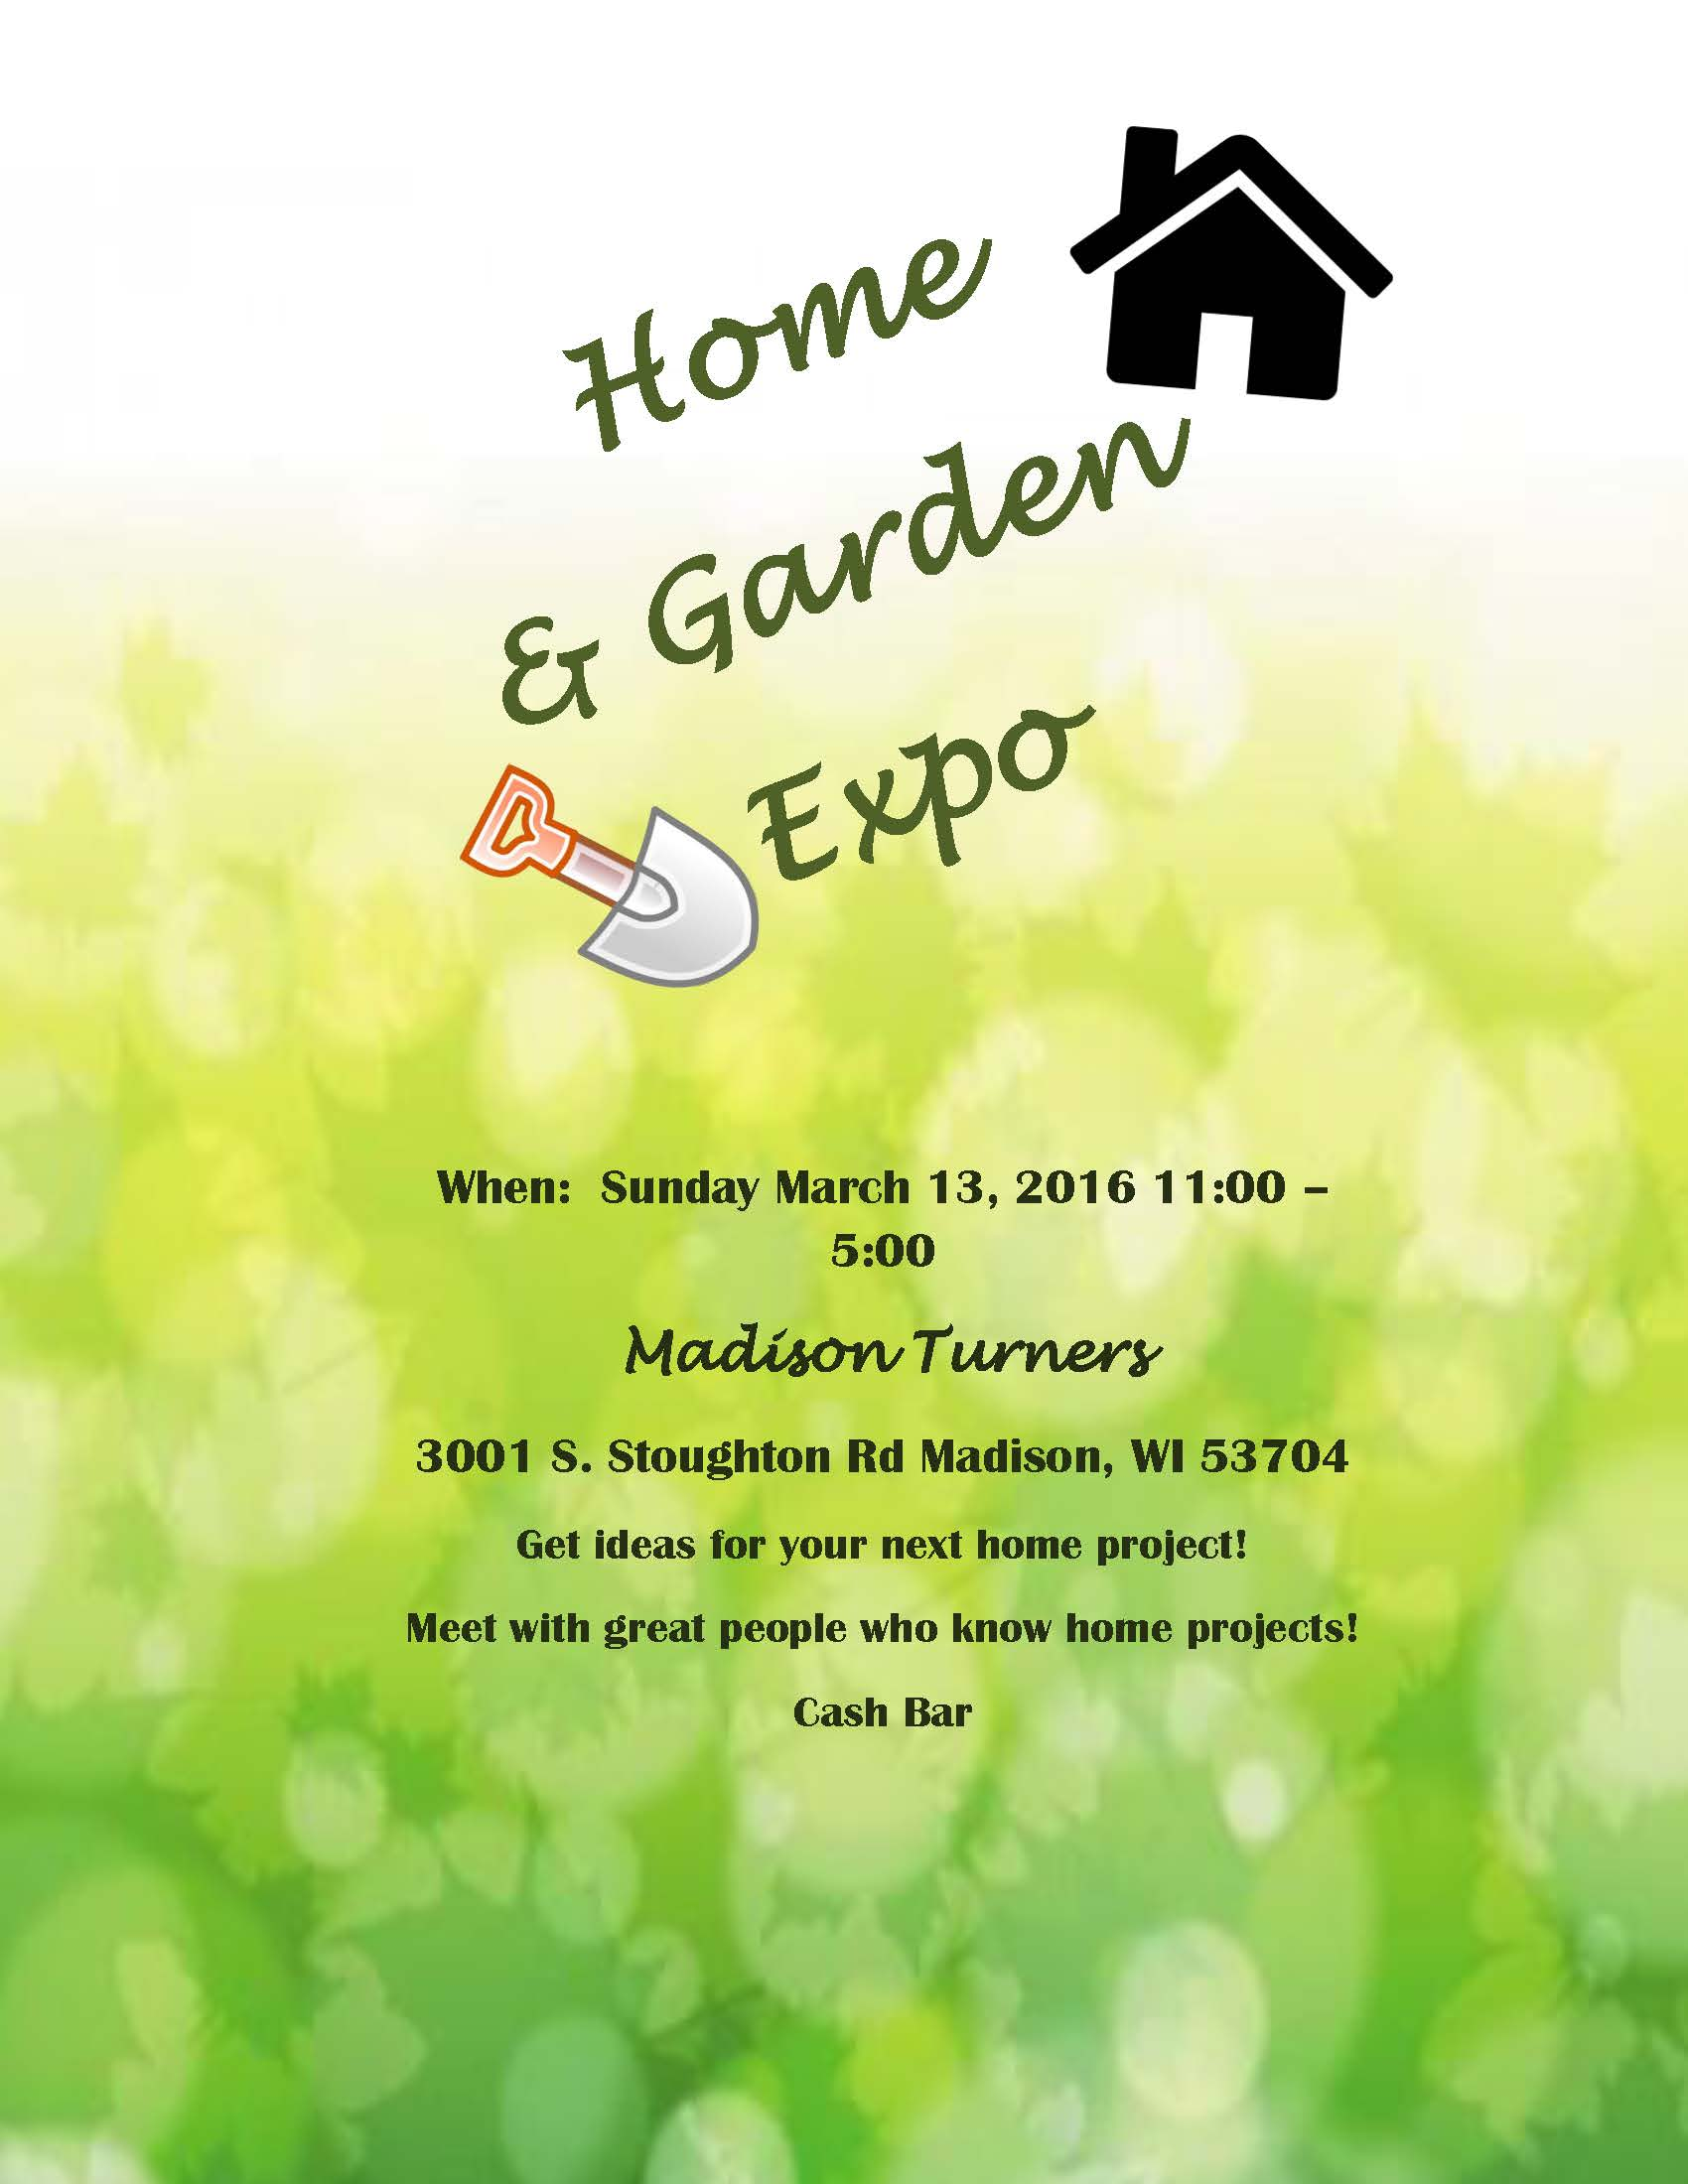 Home and Garden Expo Flyer - Sunday March 13, 2016 11:00am CST - 5:00pm CST